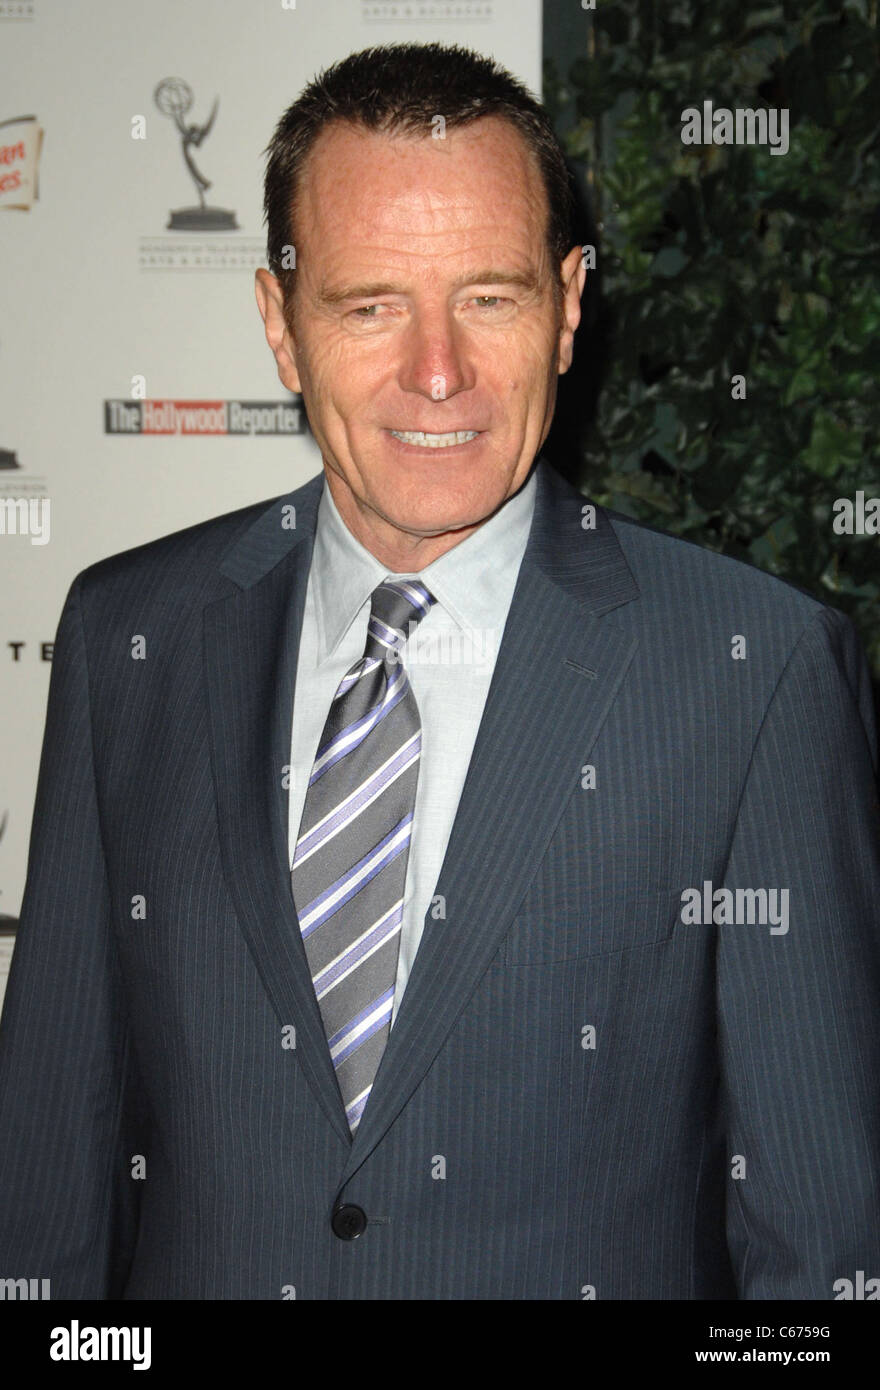 Bryan Cranston at arrivals for 62nd Primetime Emmy Awards Performers Nominee Reception, Spectra by Wolfgang Puck - Stock Image